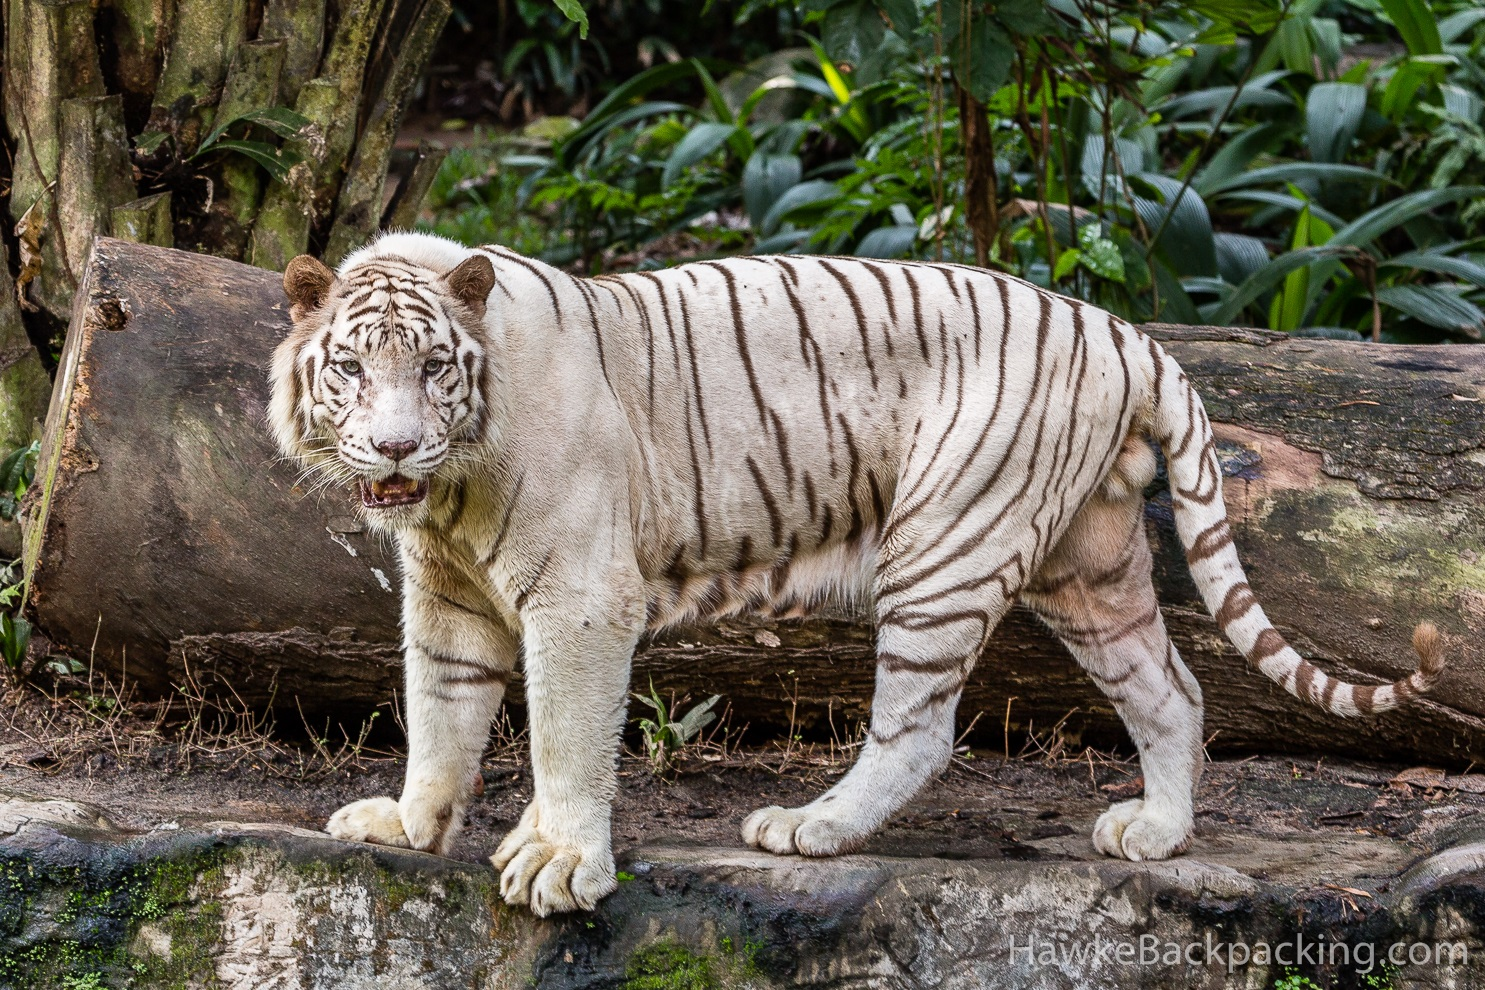 White tigers maul cleaner to death at zoo  Telegraph